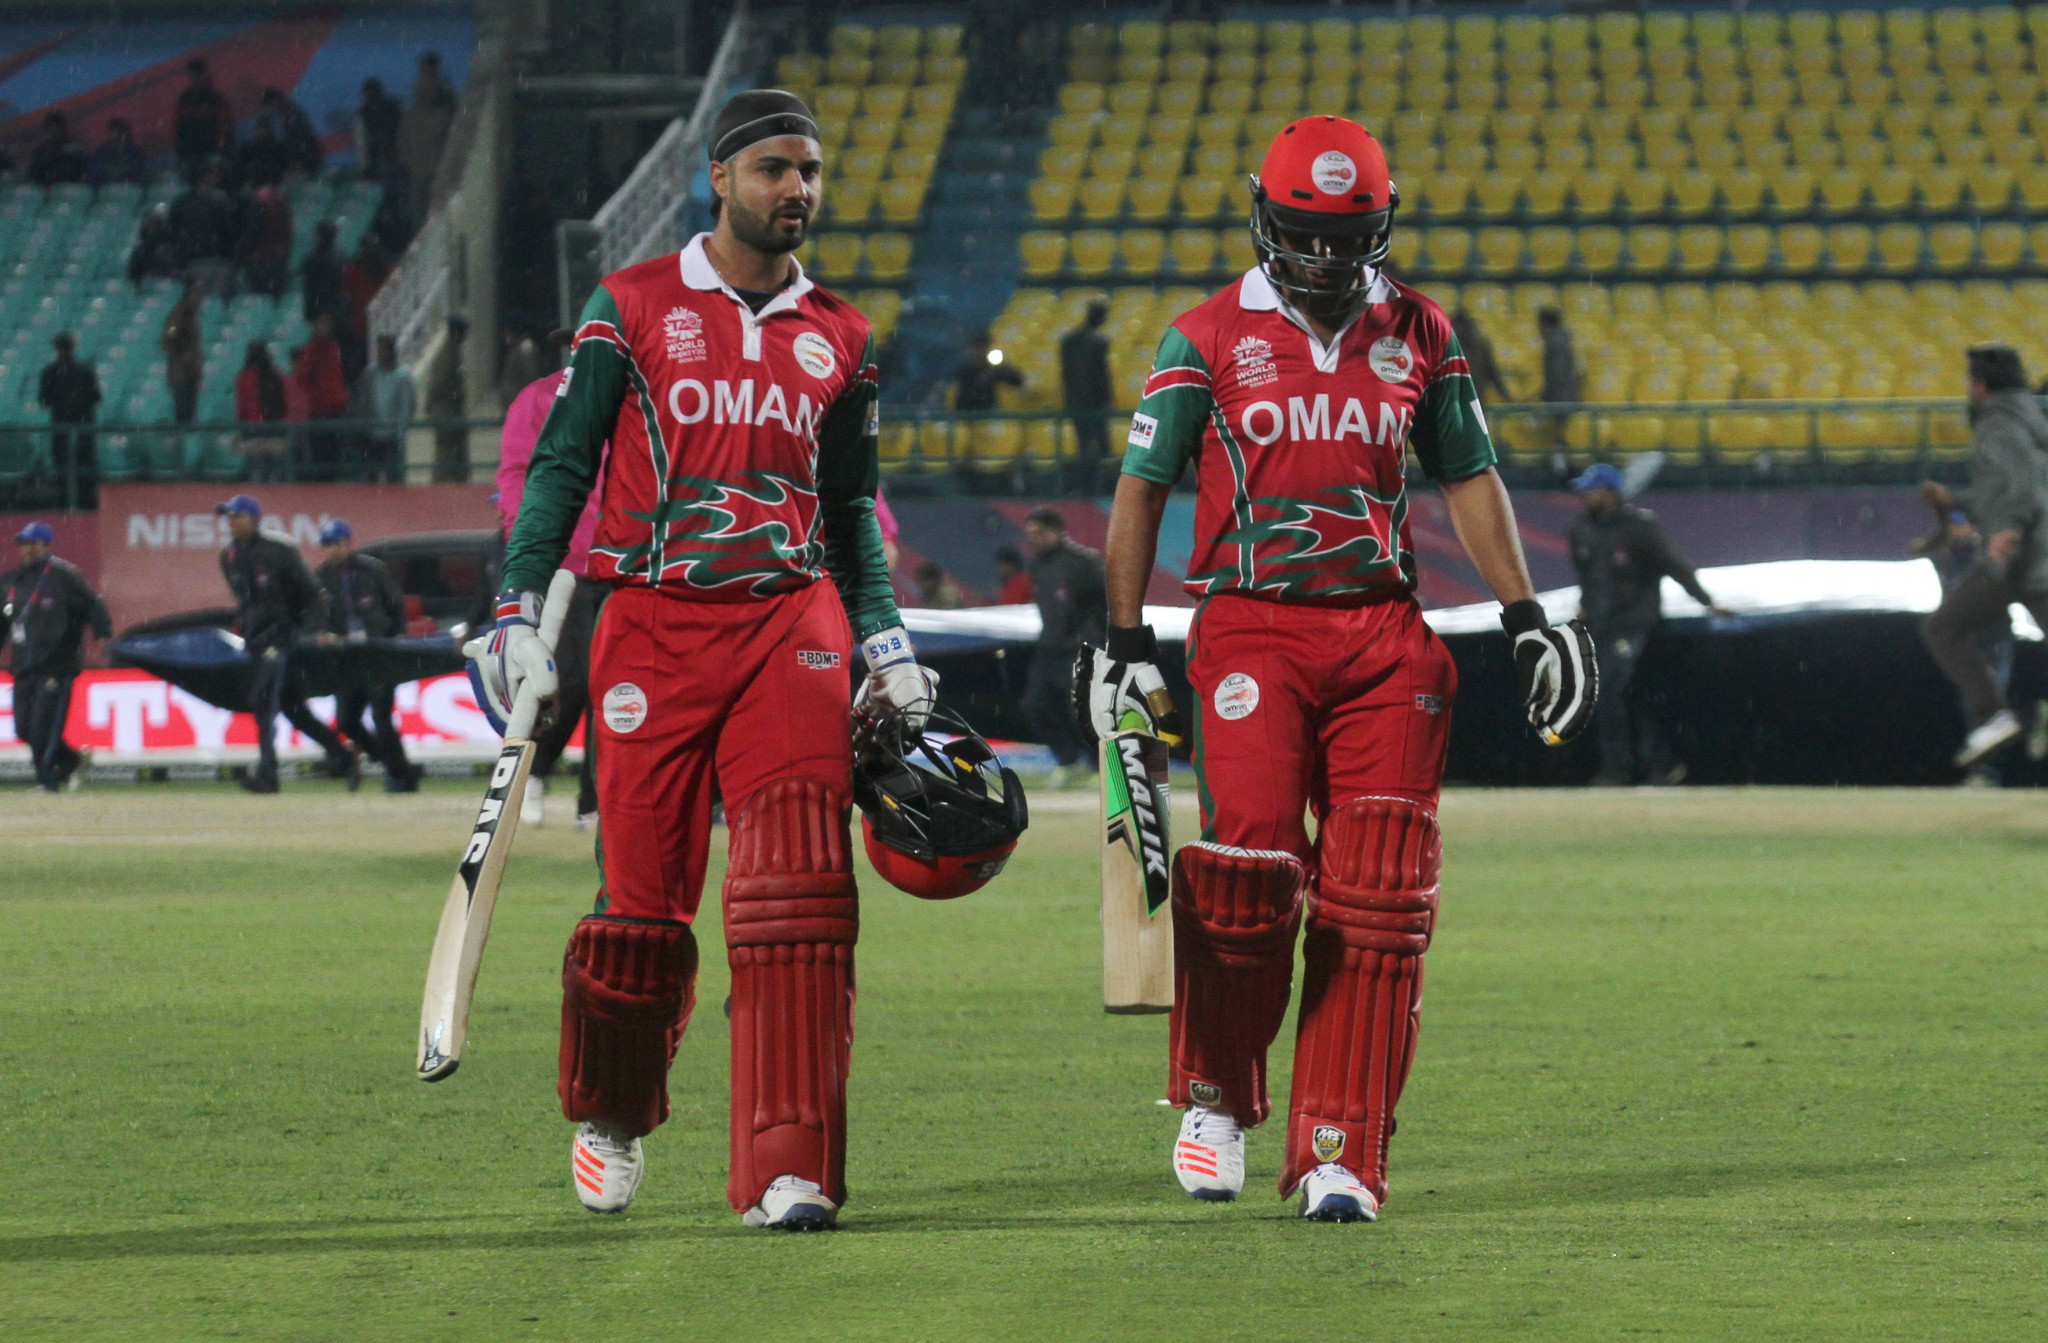 ICC report growth in international T20 cricket